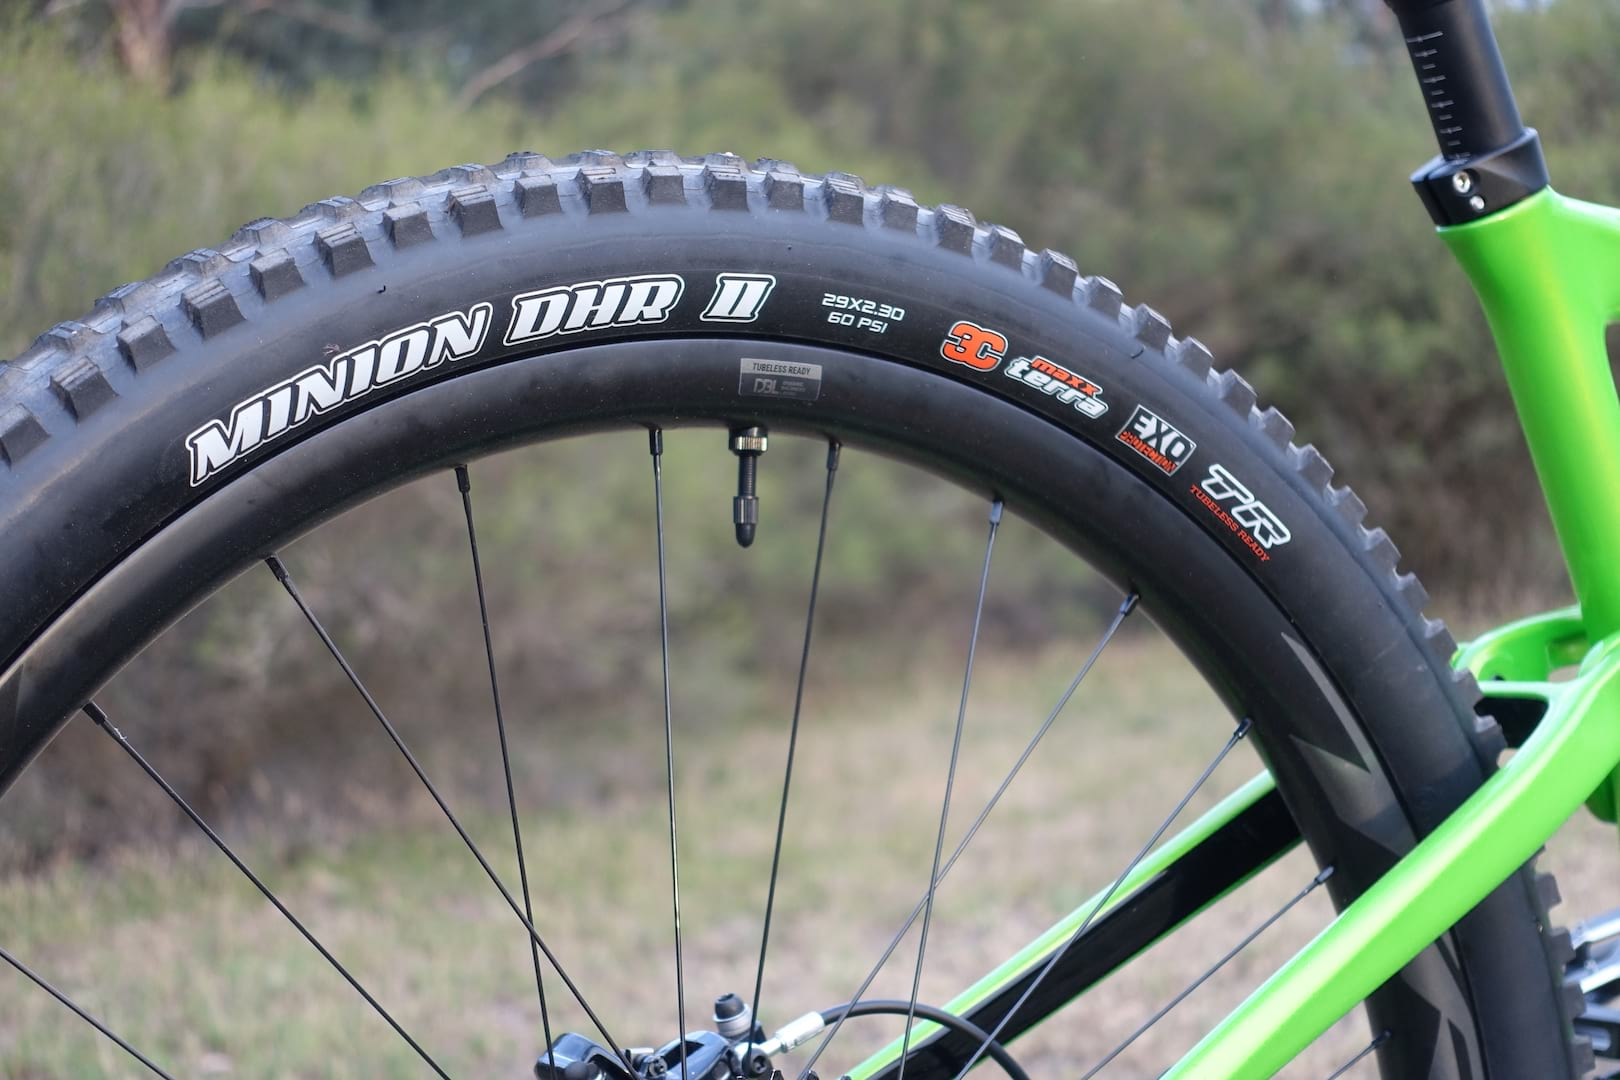 169d405e6b5 Triple rubber compound Maxxis Minion tyres feature front and rear on the  Trance. giant trance 29 dropper post. giant trance 29 dropper post